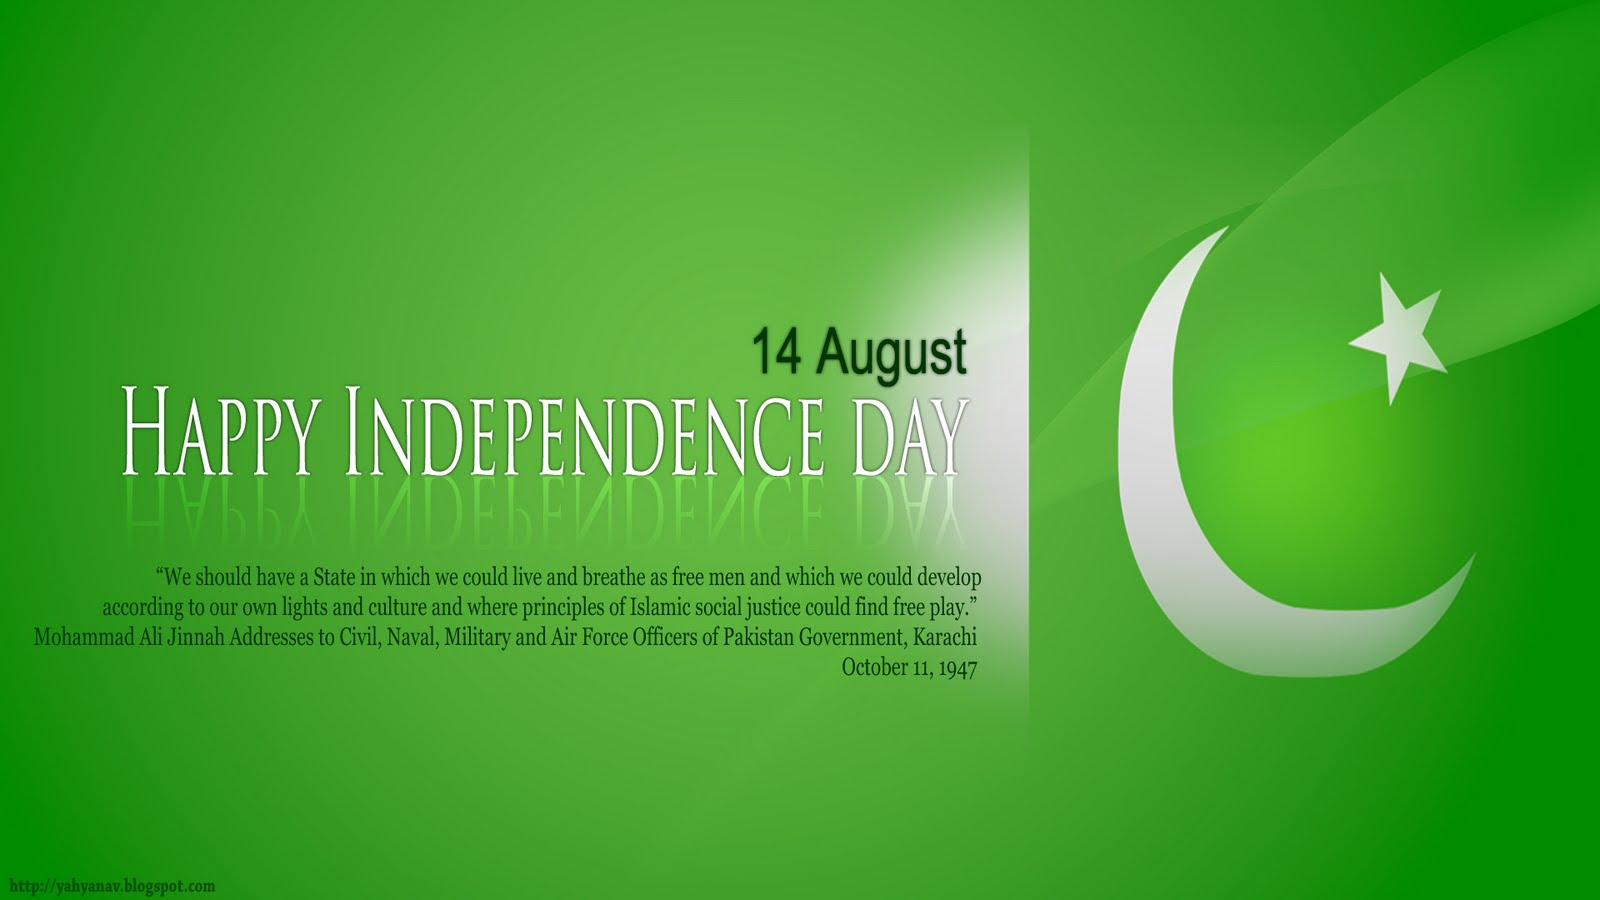 14th august an independance day essays in urdu Pakistan's independence day, which is annually held on august 14, celebrates  the country's independence from the british rule on that date in 1947 this day is .